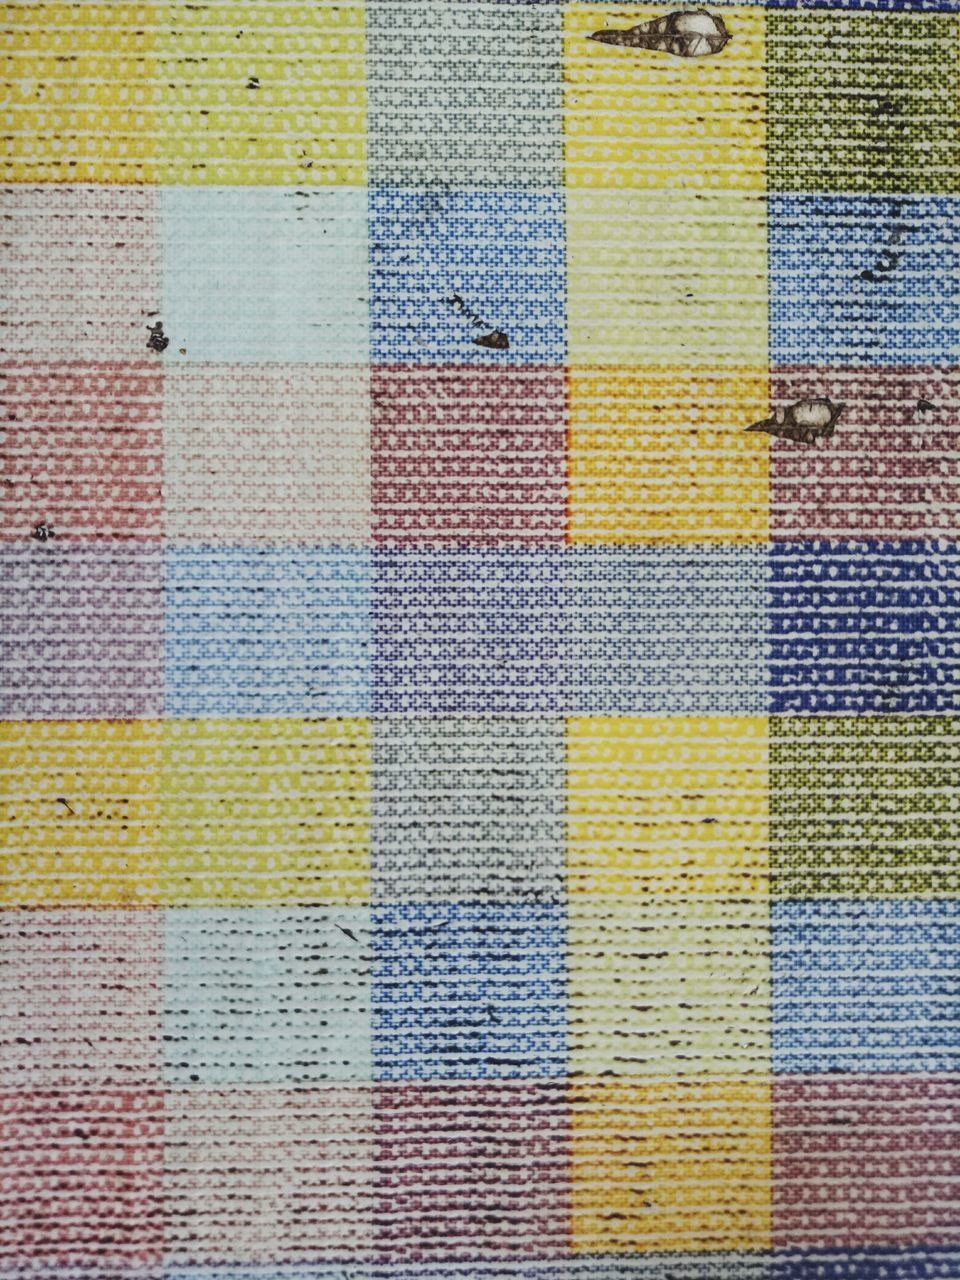 full frame, multi colored, backgrounds, pattern, textured, abstract, no people, seamless pattern, yellow, close-up, day, pixelated